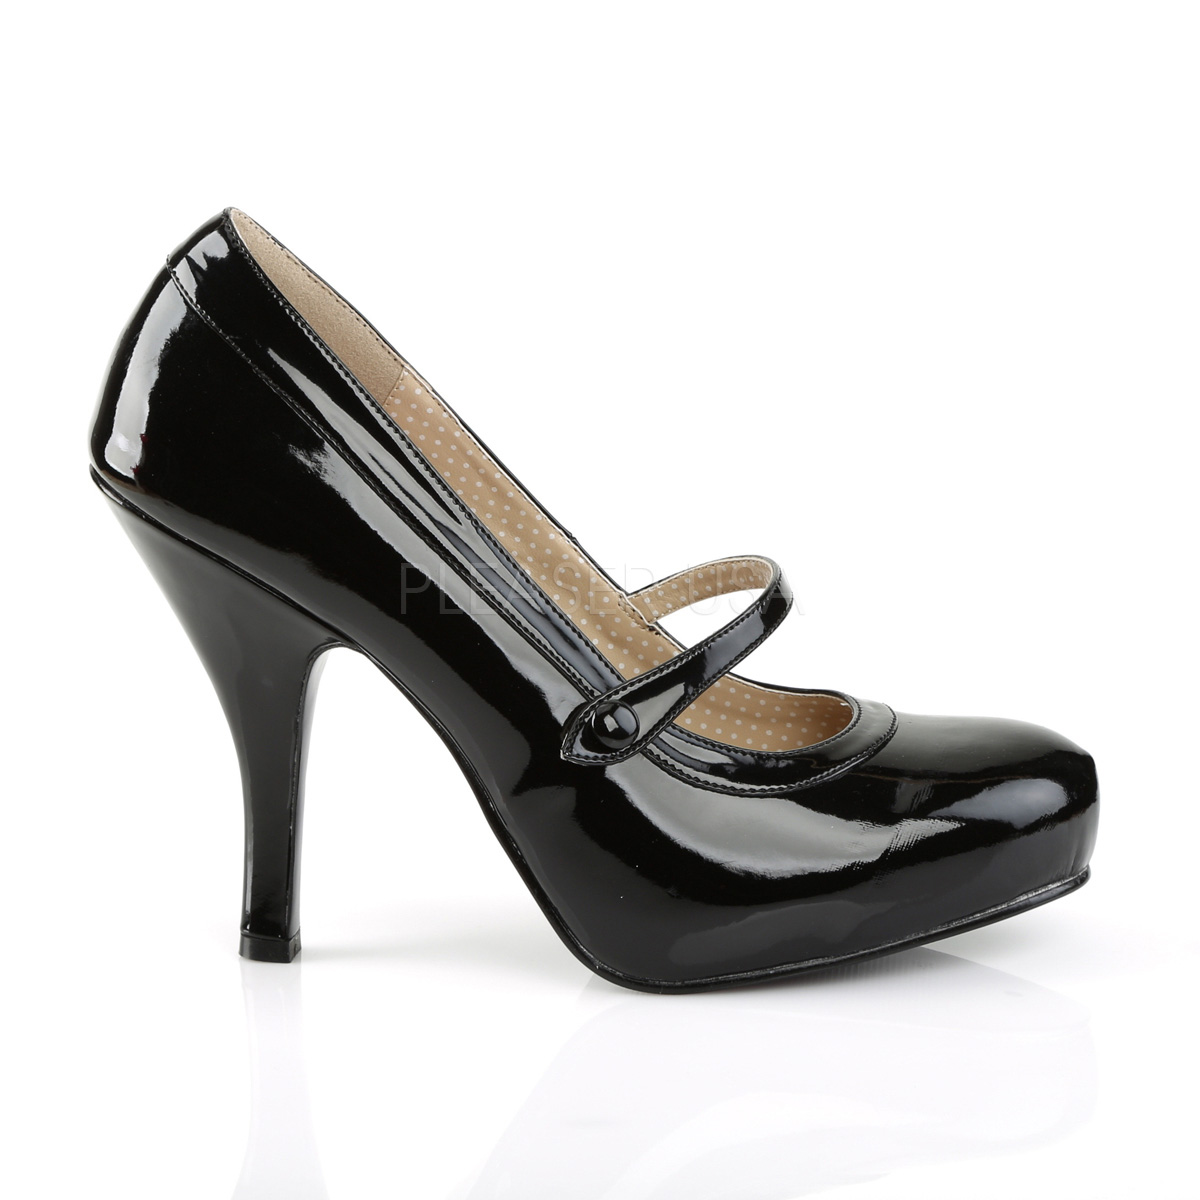 3447903986ad6 Mary Janes PINUP-01 - Patent Black